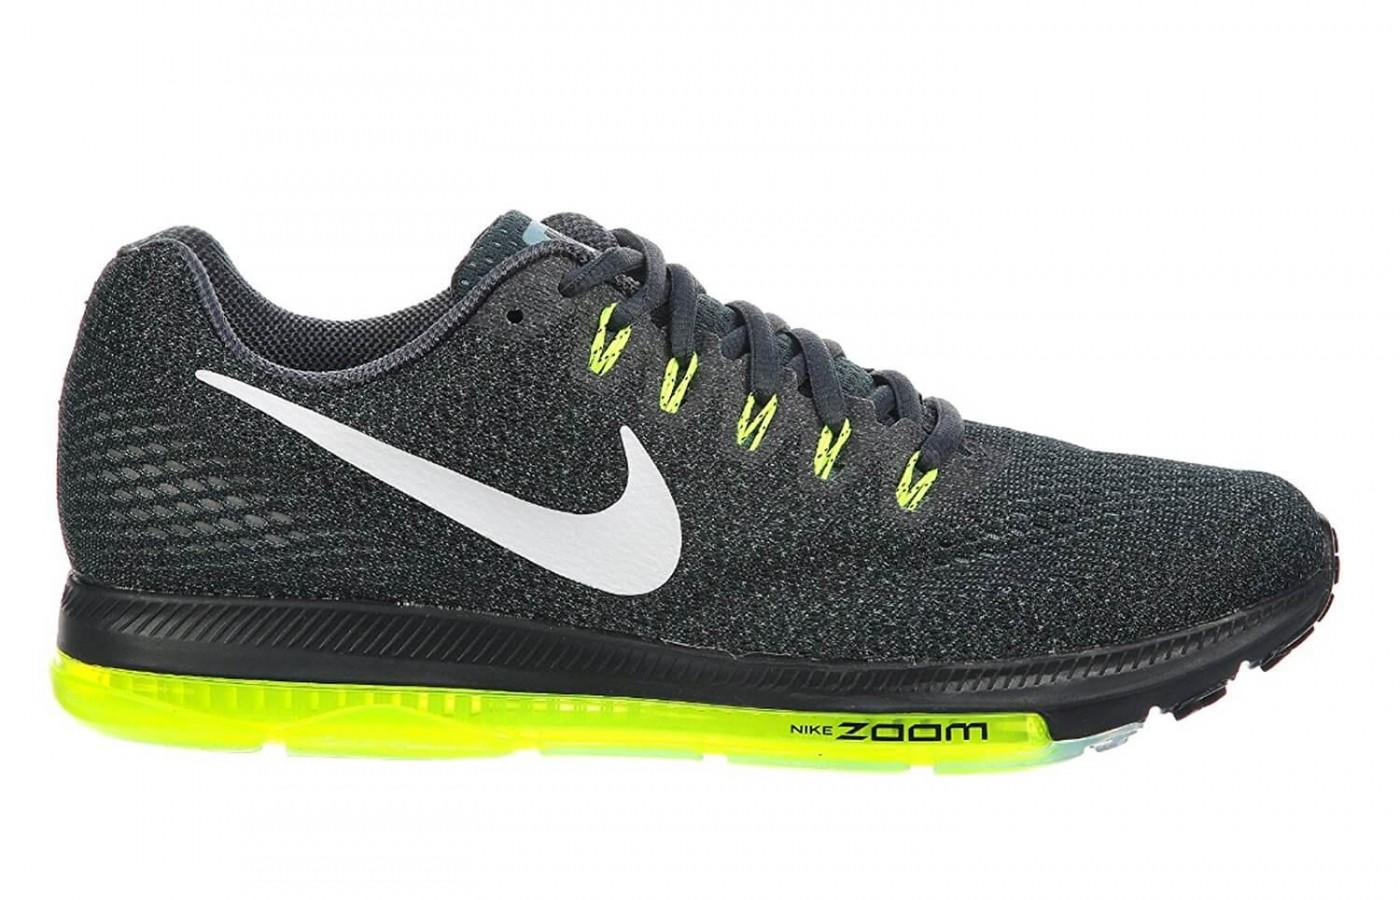 b12cb04348a7 Nike Zoom All Out Low. Nike combines style and structure for a great  overall shoe.